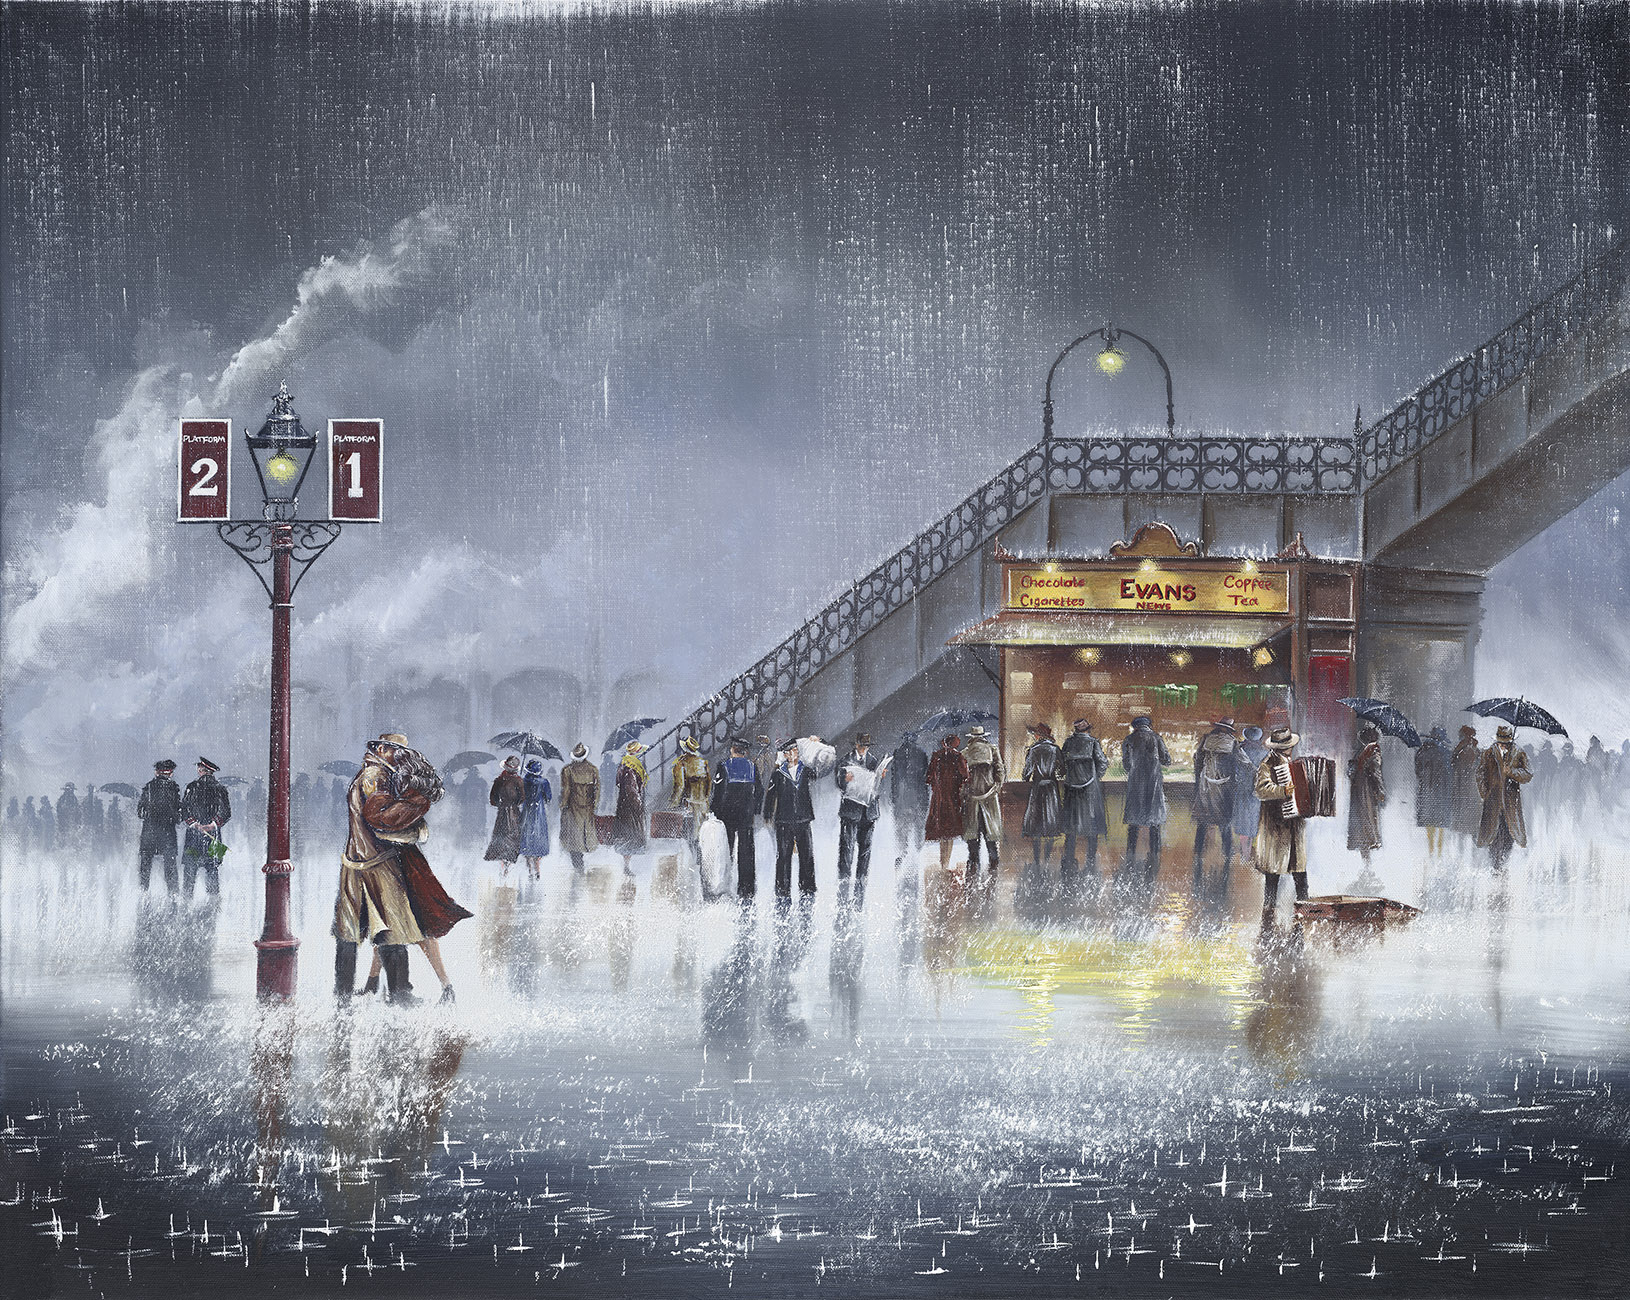 You Don't Know How Much I Miss You by Jeff Rowland